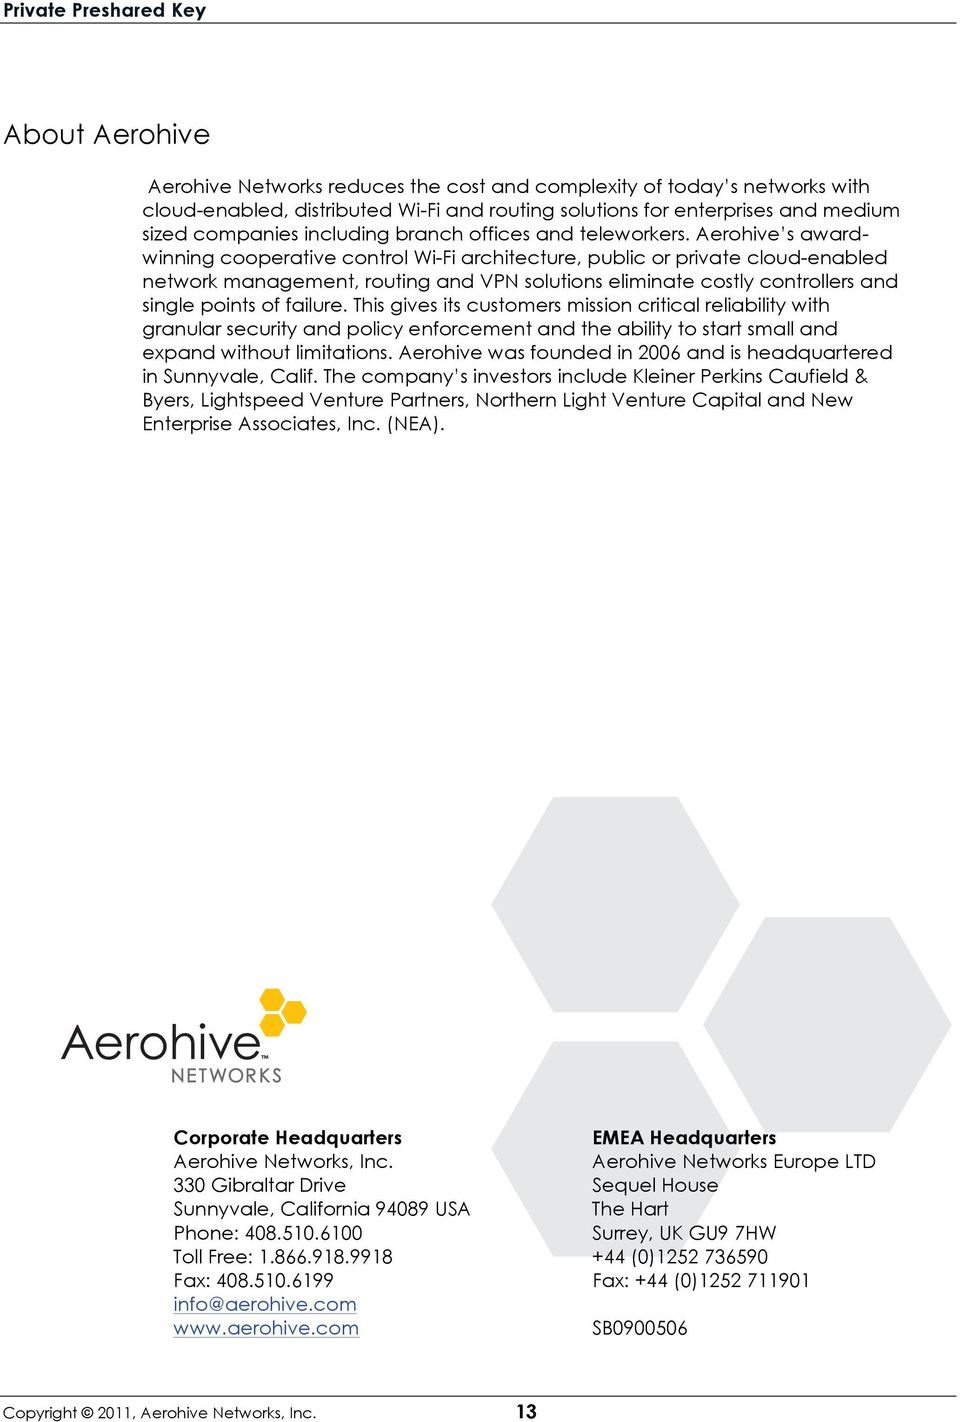 Aerohive s awardwinning cooperative control Wi-Fi architecture, public or private cloud-enabled network management, routing and VPN solutions eliminate costly controllers and single points of failure.